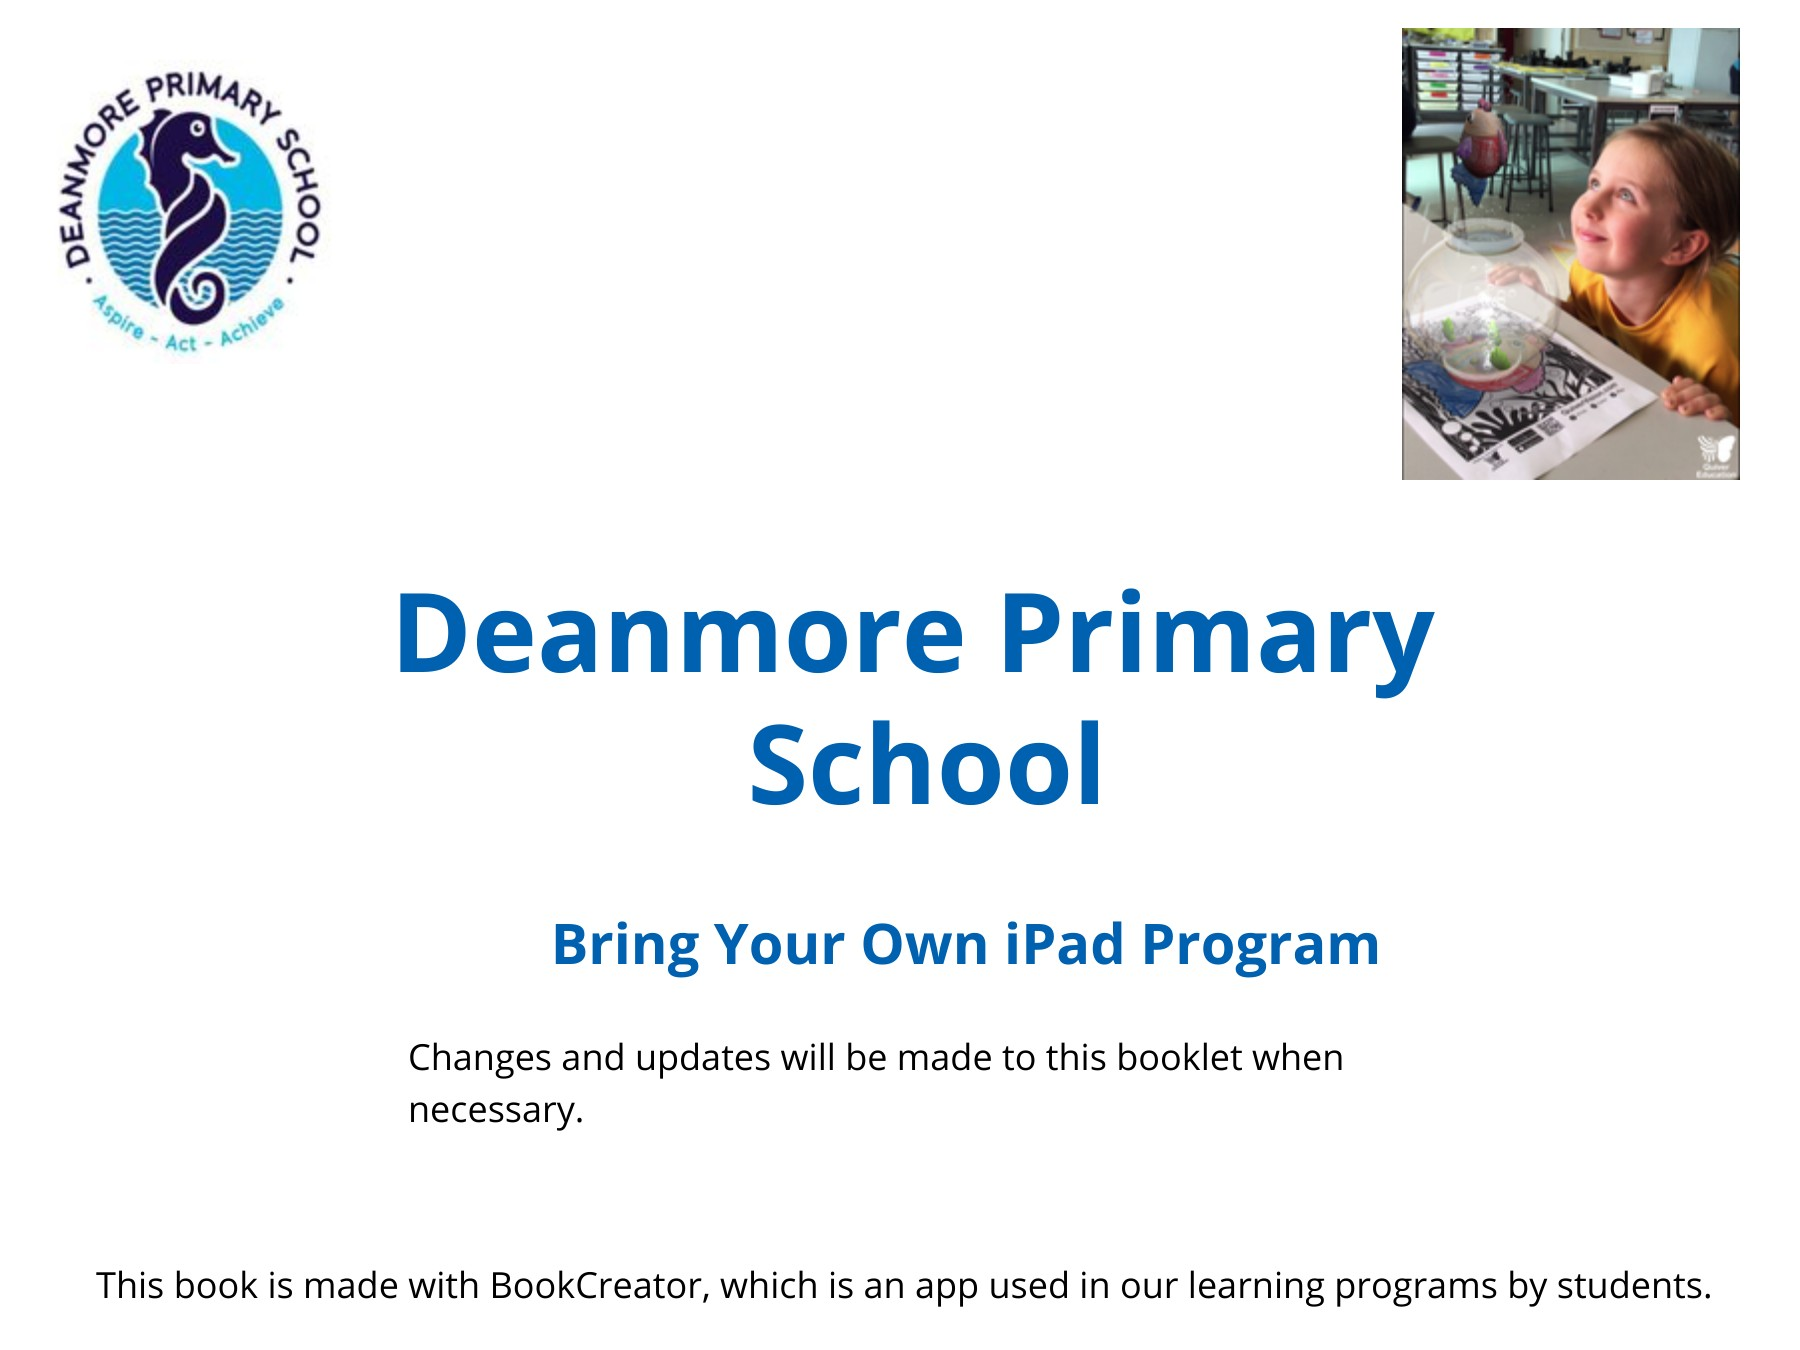 Deanmore Primary School - Family Funded iPad